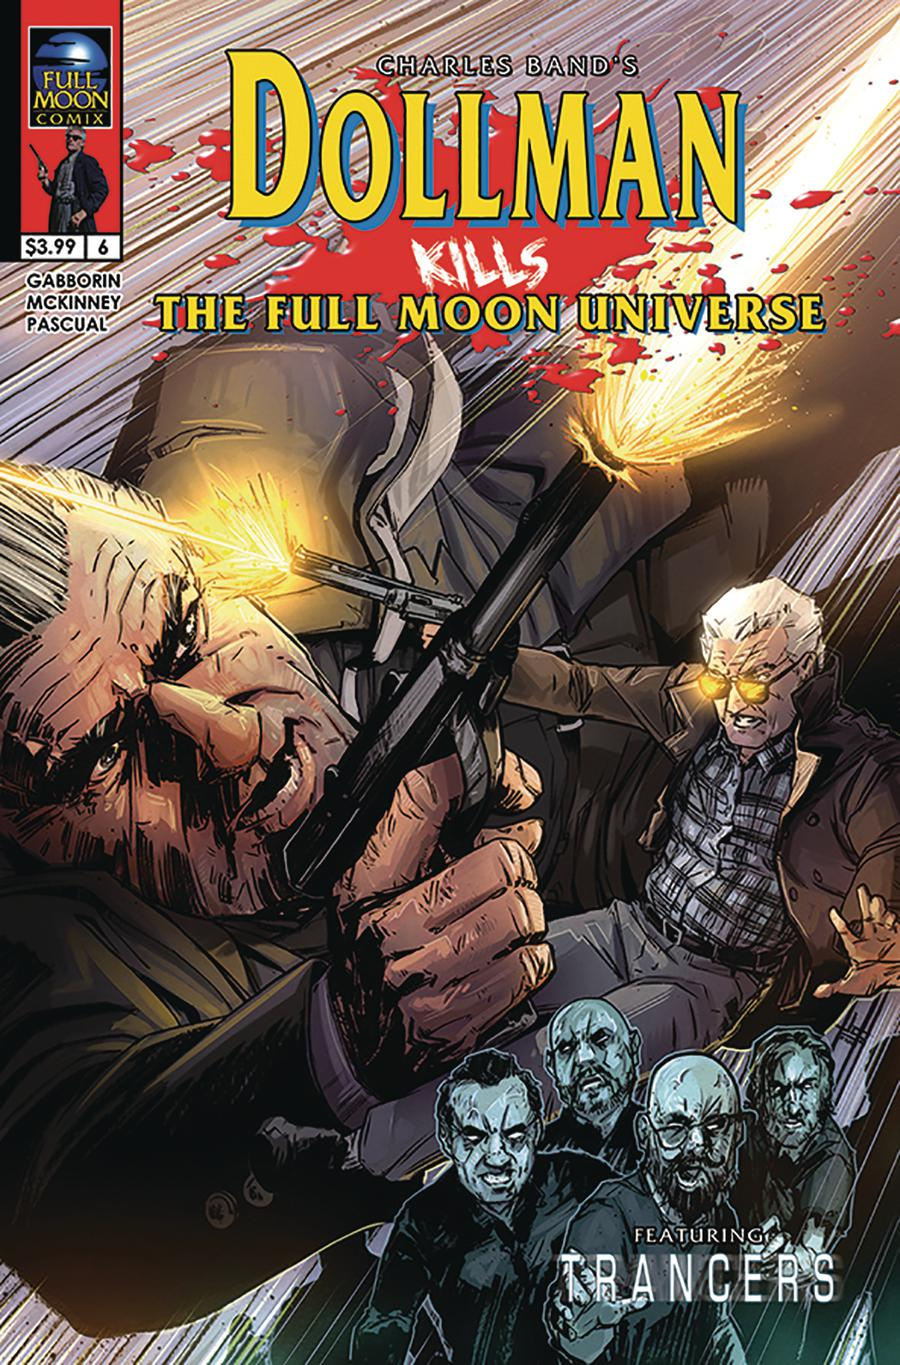 Dollman Kills The Full Moon Universe #6 Cover A Regular Jason Strutz Cover